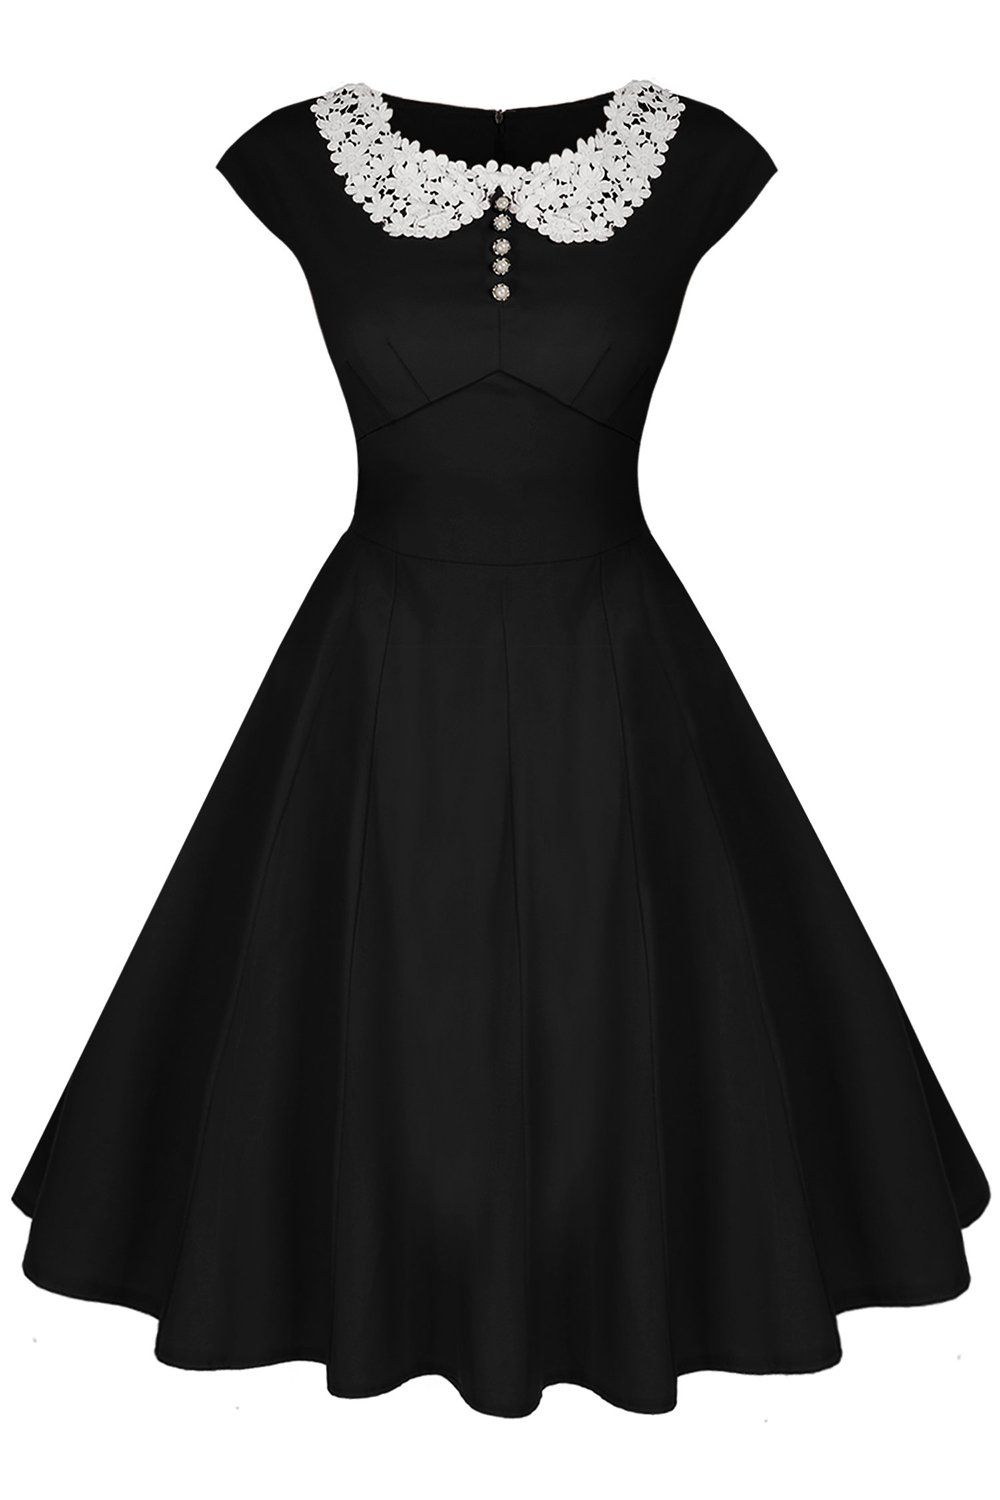 5ea5688081 1940s Dress Styles Audrey Hepburn Style 19d0s Rockabilly Evening Dress   26.50 AT vintagedancer.com